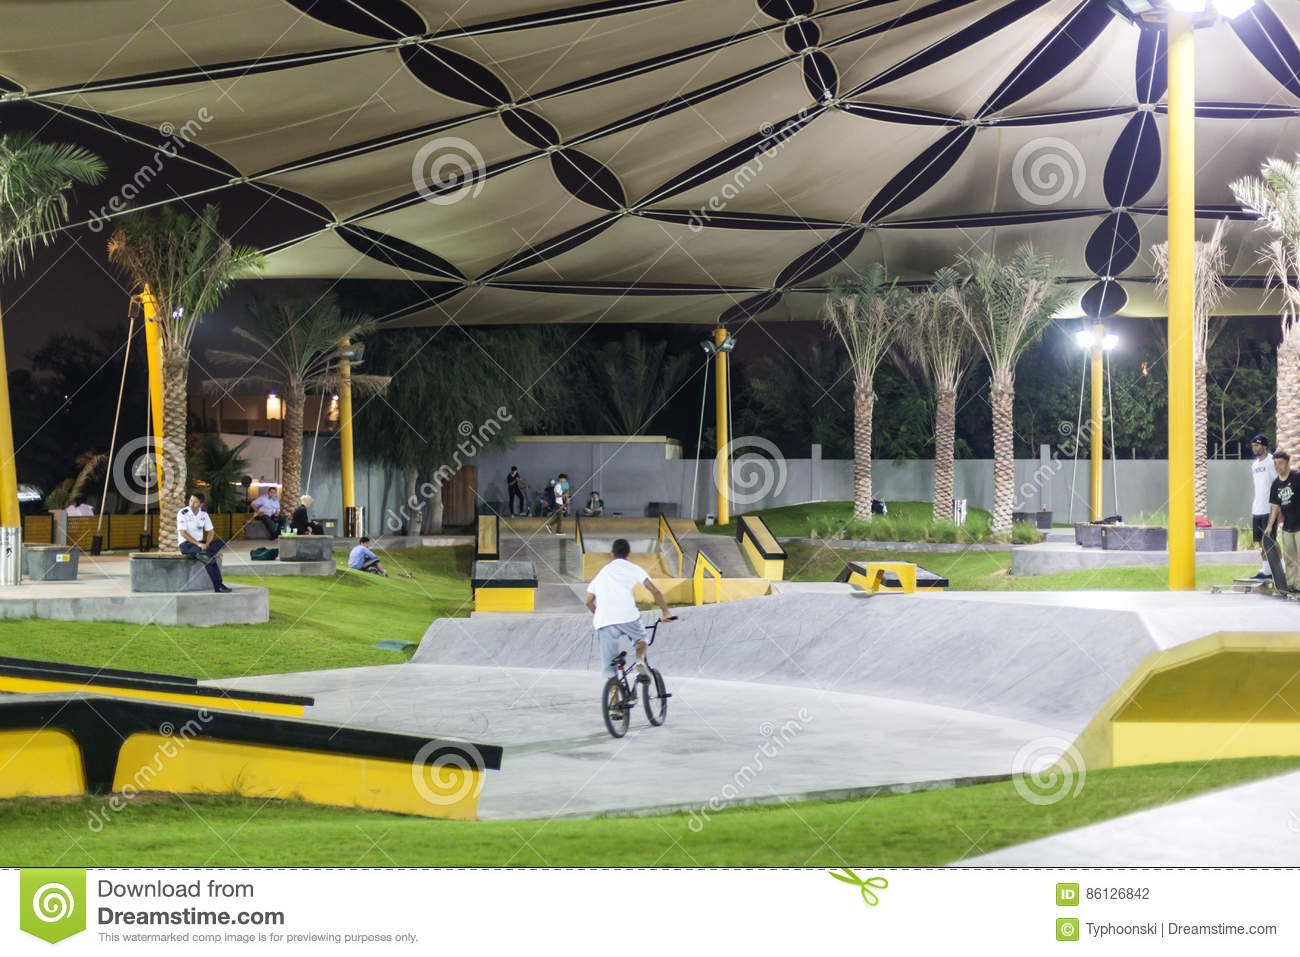 public space in dubai uae The mohammed bin rashid space centre (mbrsc), encompassing the emirates institution for advanced science and technology (eiast) is a dubai government organisation working on the uae space program which includes various space satellite projects and the emirates mars mission.